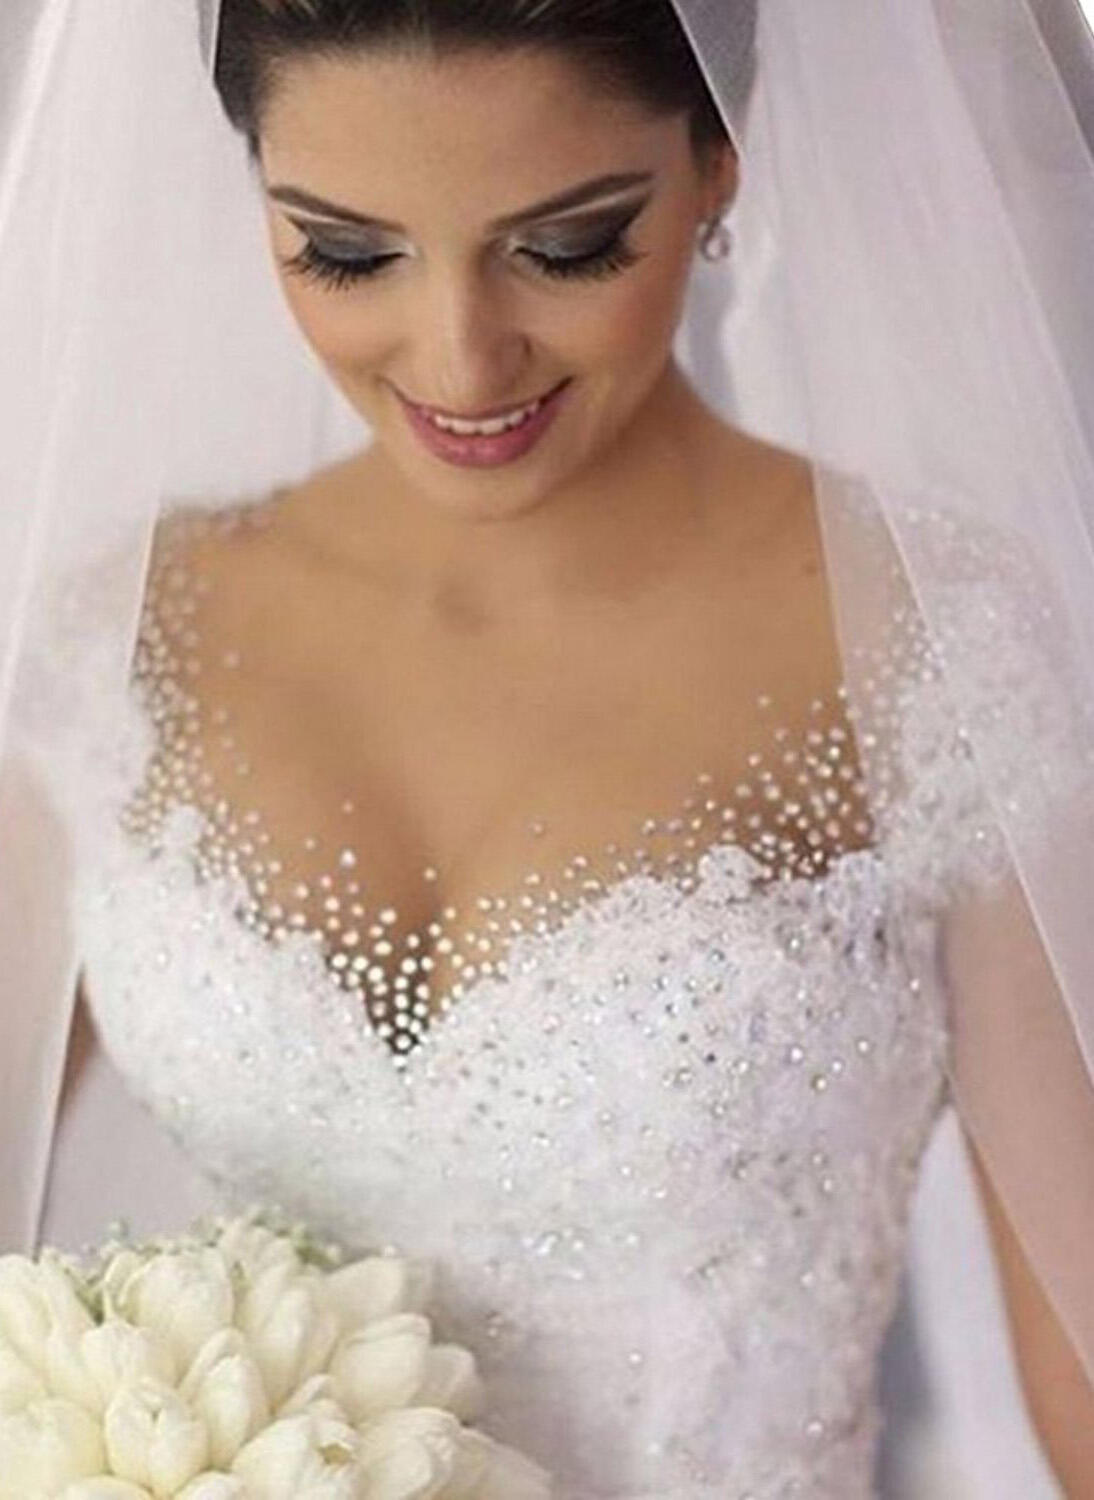 33fd961fea2 Lace Beading Sequins Ball-Gown With Luxurious Tulle Wedding Dresses  (002148056). Loading zoom